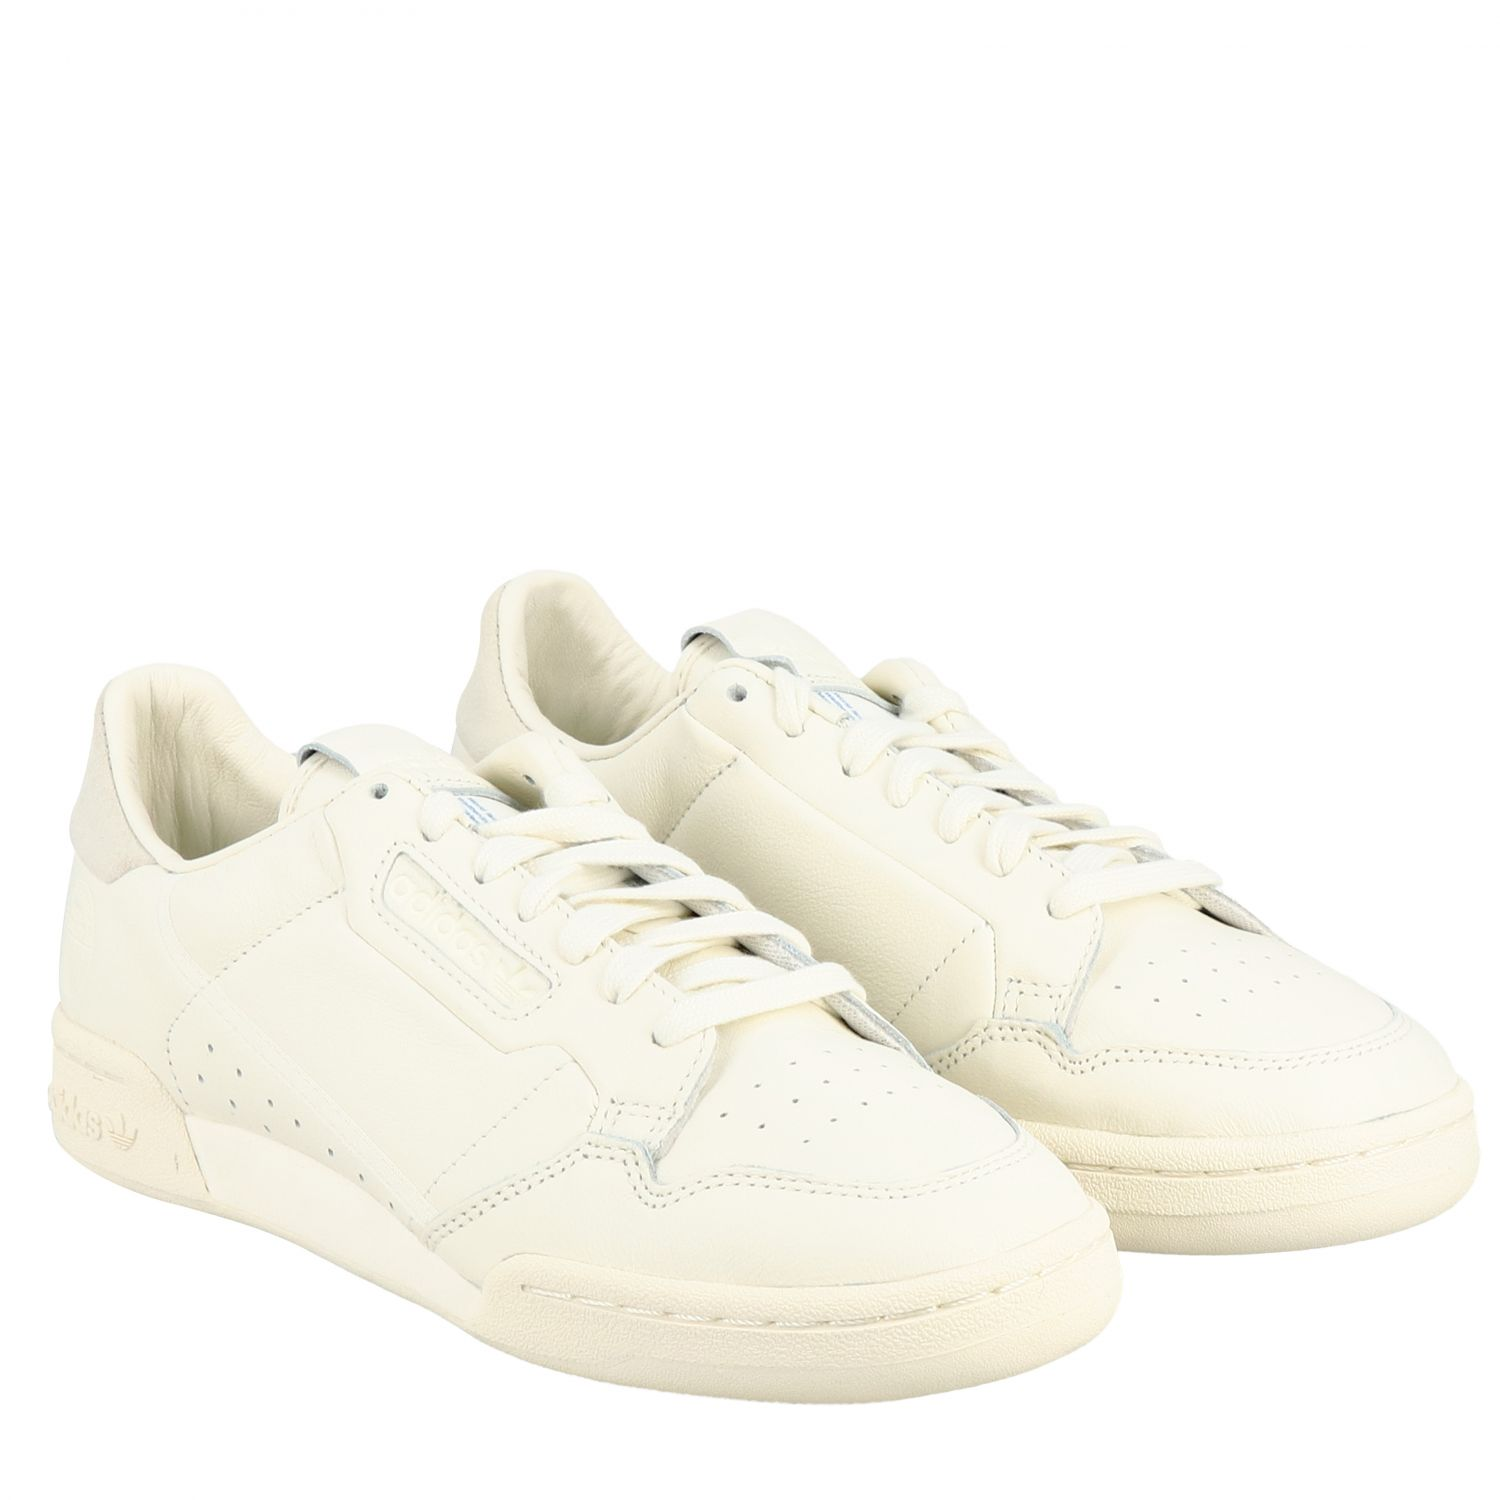 Sneakers Adidas Originals: Continental 80 Adidas Originals Sneakers aus Leder yellow cream 2